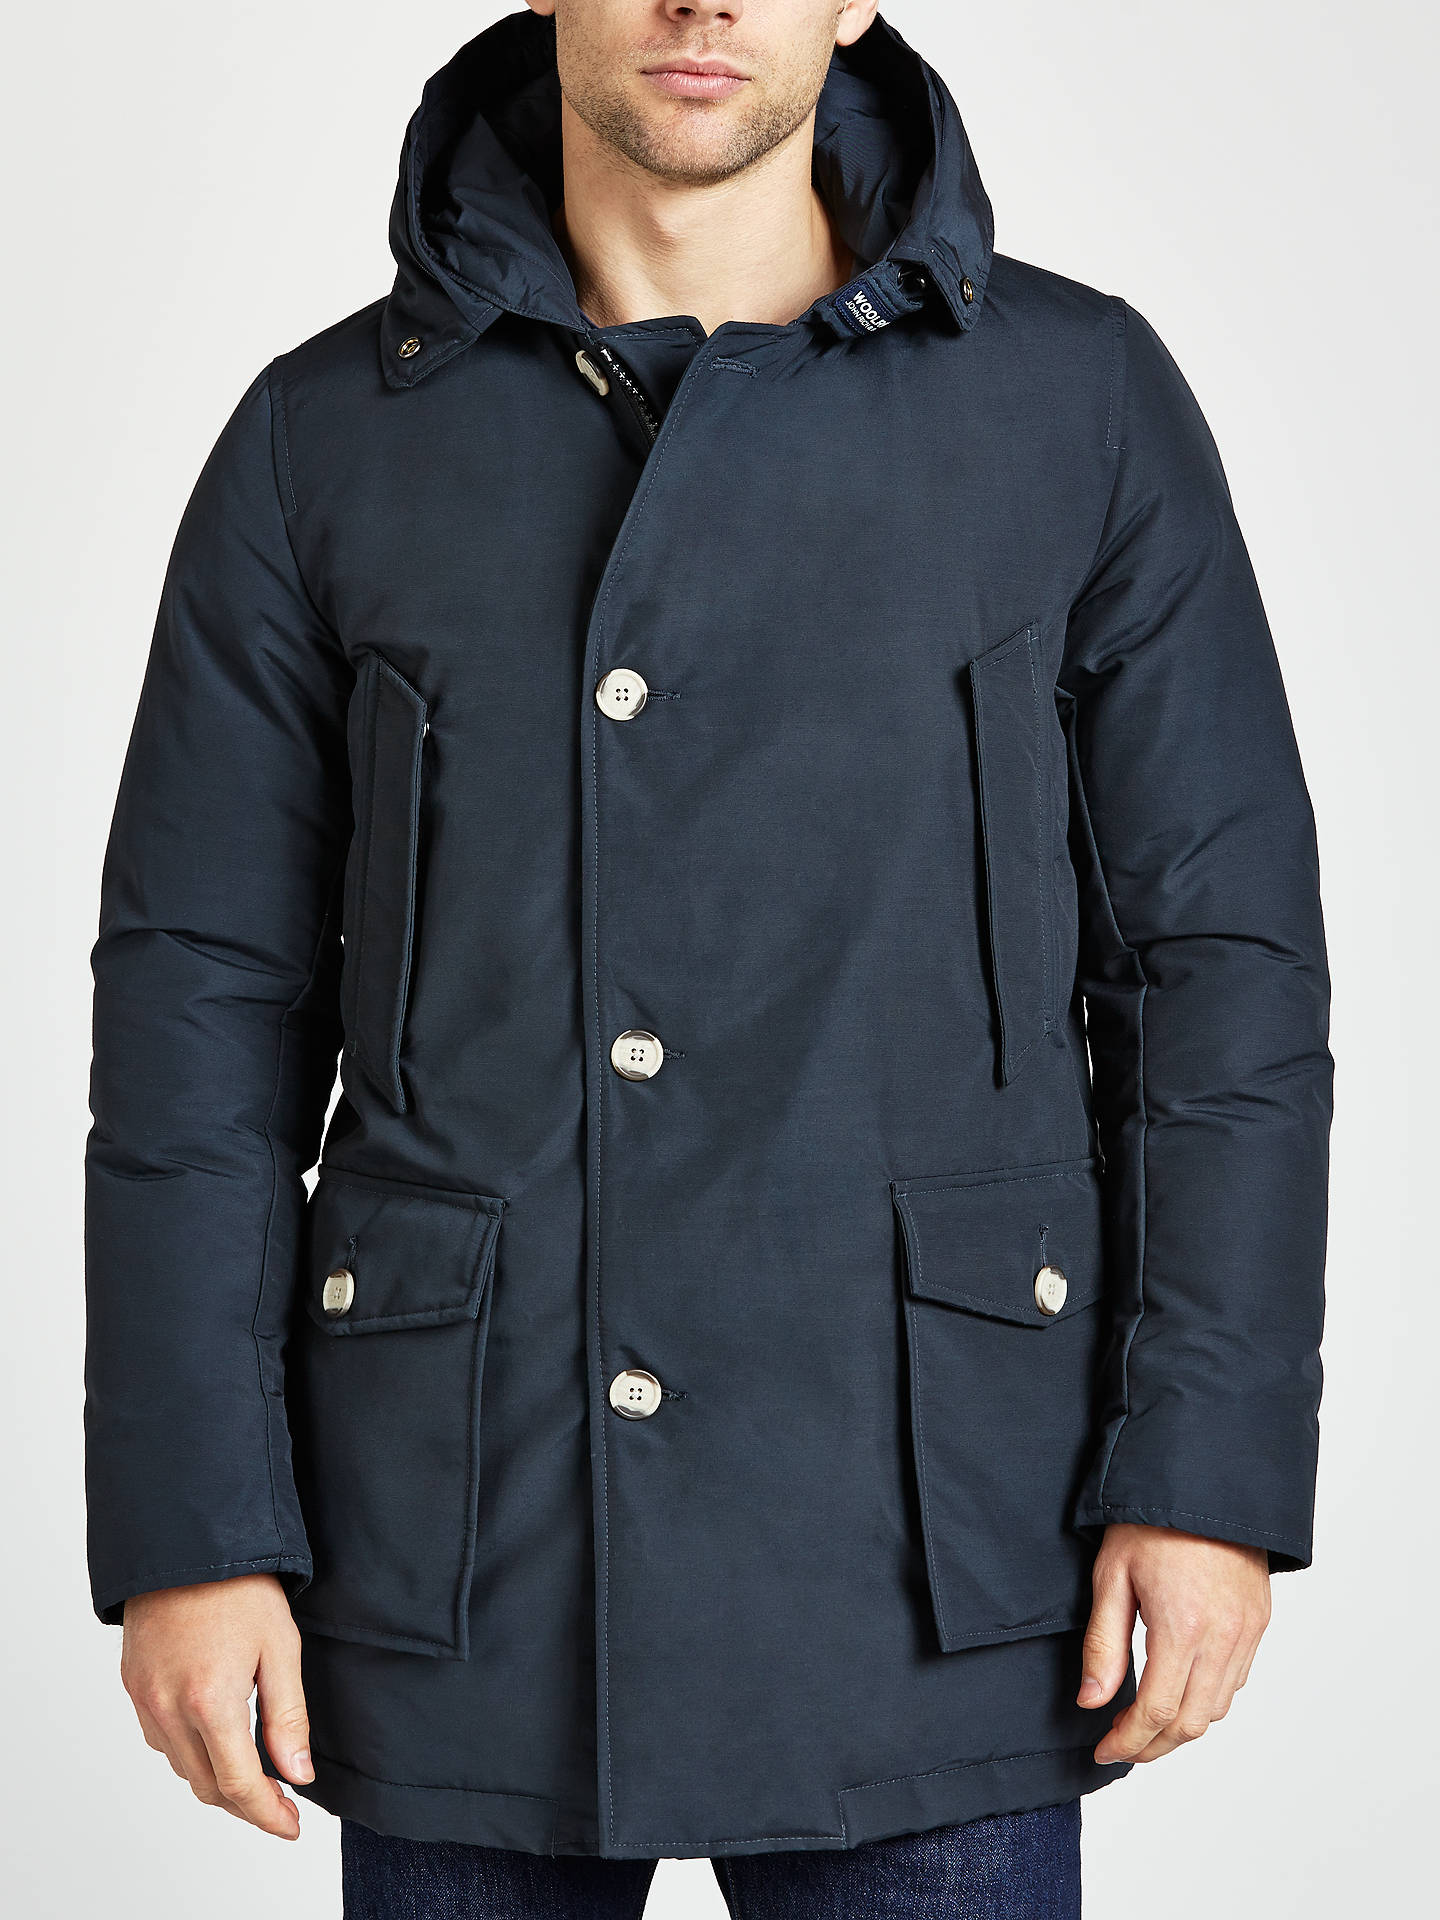 4fdf78d6e36f ... Buy Woolrich John Rich & Bros. Arctic Parka Jacket, Navy, XL Online at  ...